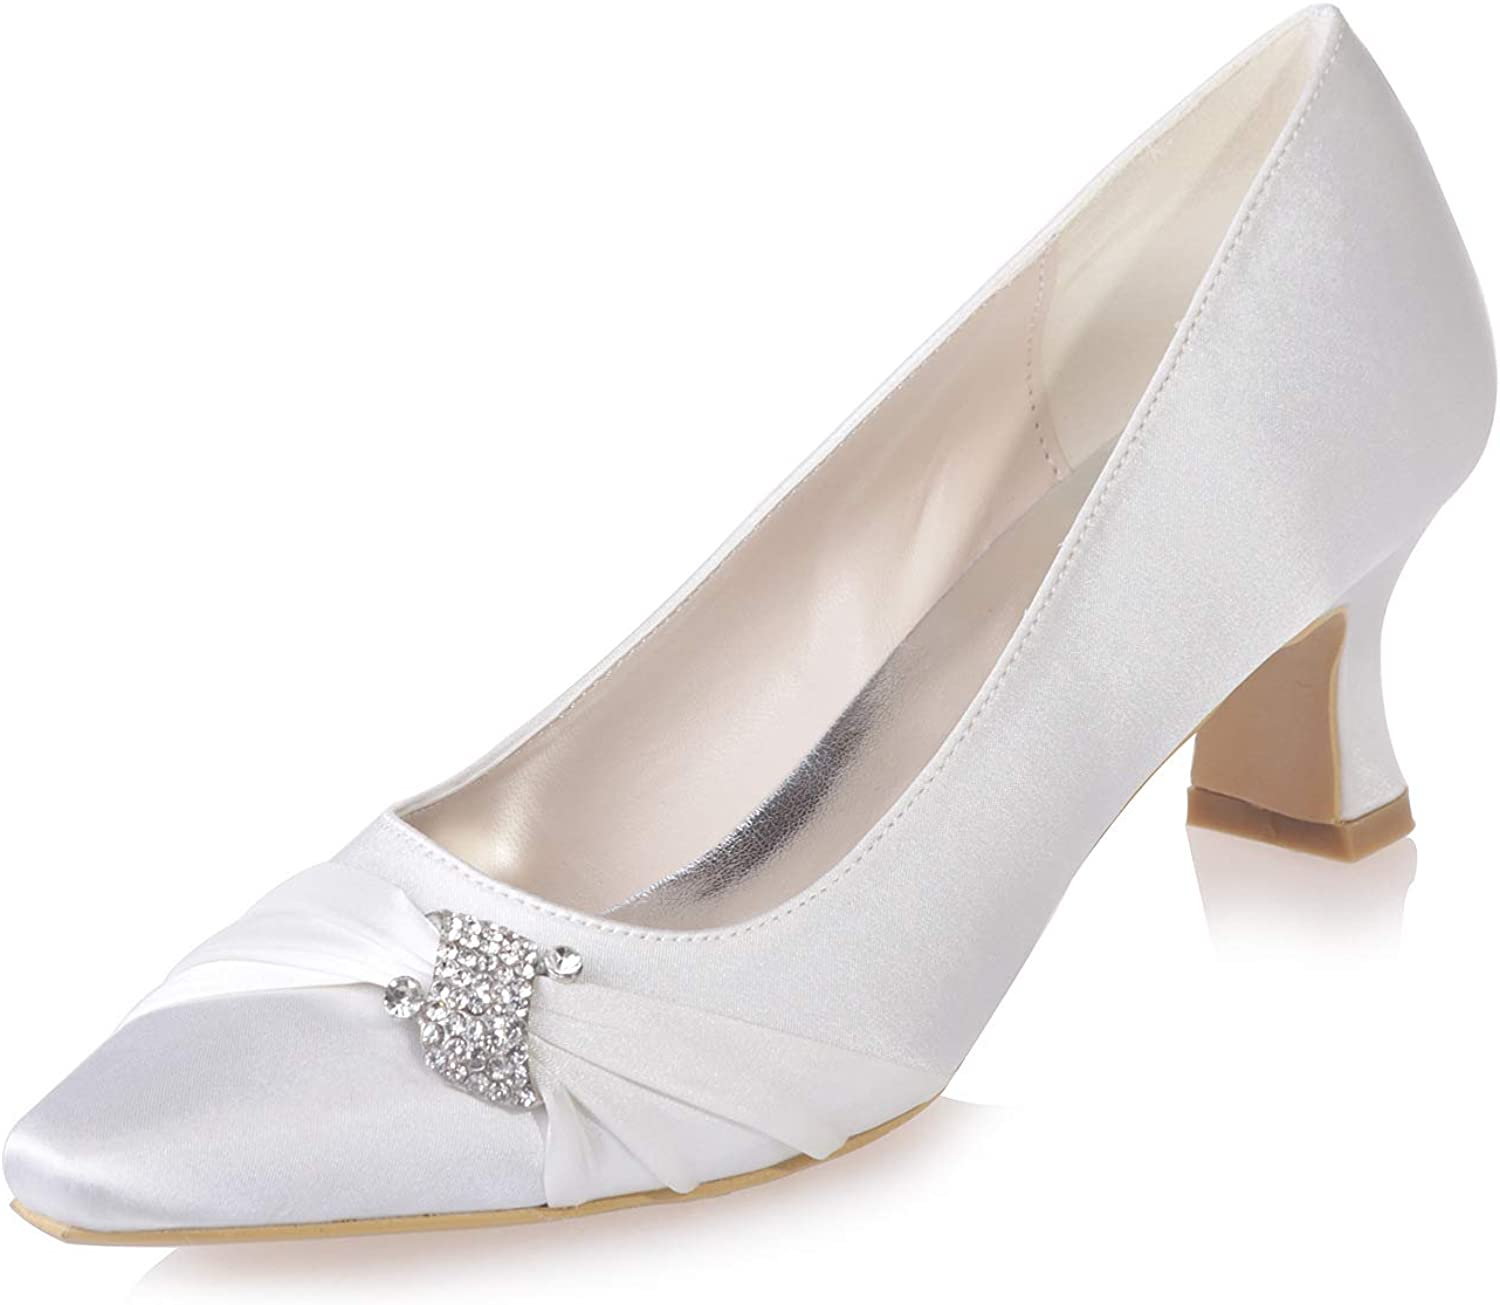 LLBubble Kitten Heels Satin Women Wedding Pumps Pointed Toe Crystals Formal Party Dress shoes 0723-02